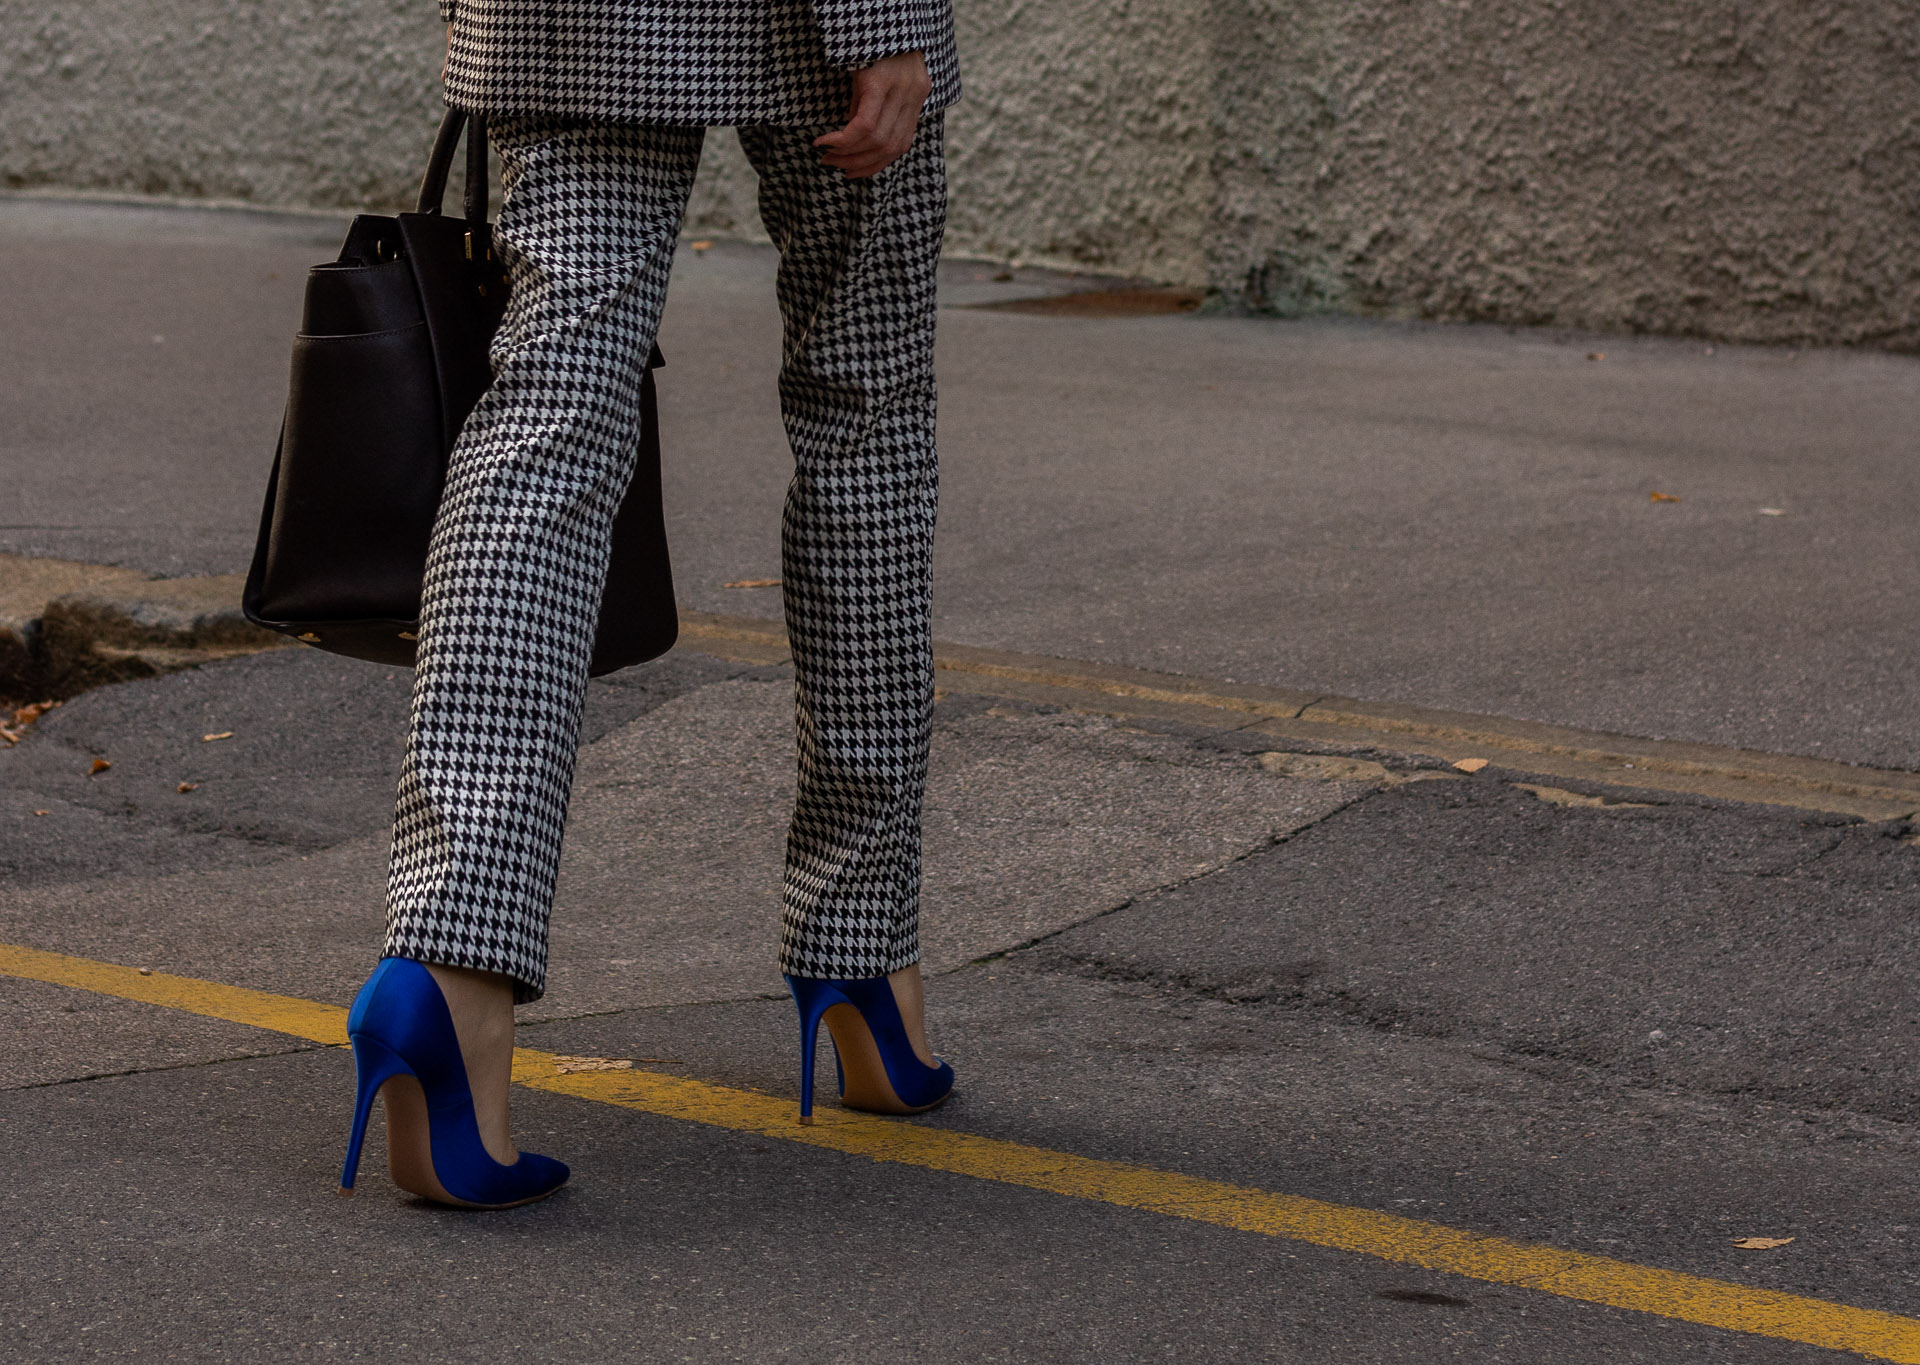 Fashion blogger Veronika Lipar of Brunette from Wall Street dressed in houndstooth pants Michael Kors Selma bag blue Gianvito Rossi court shoes for work in fall